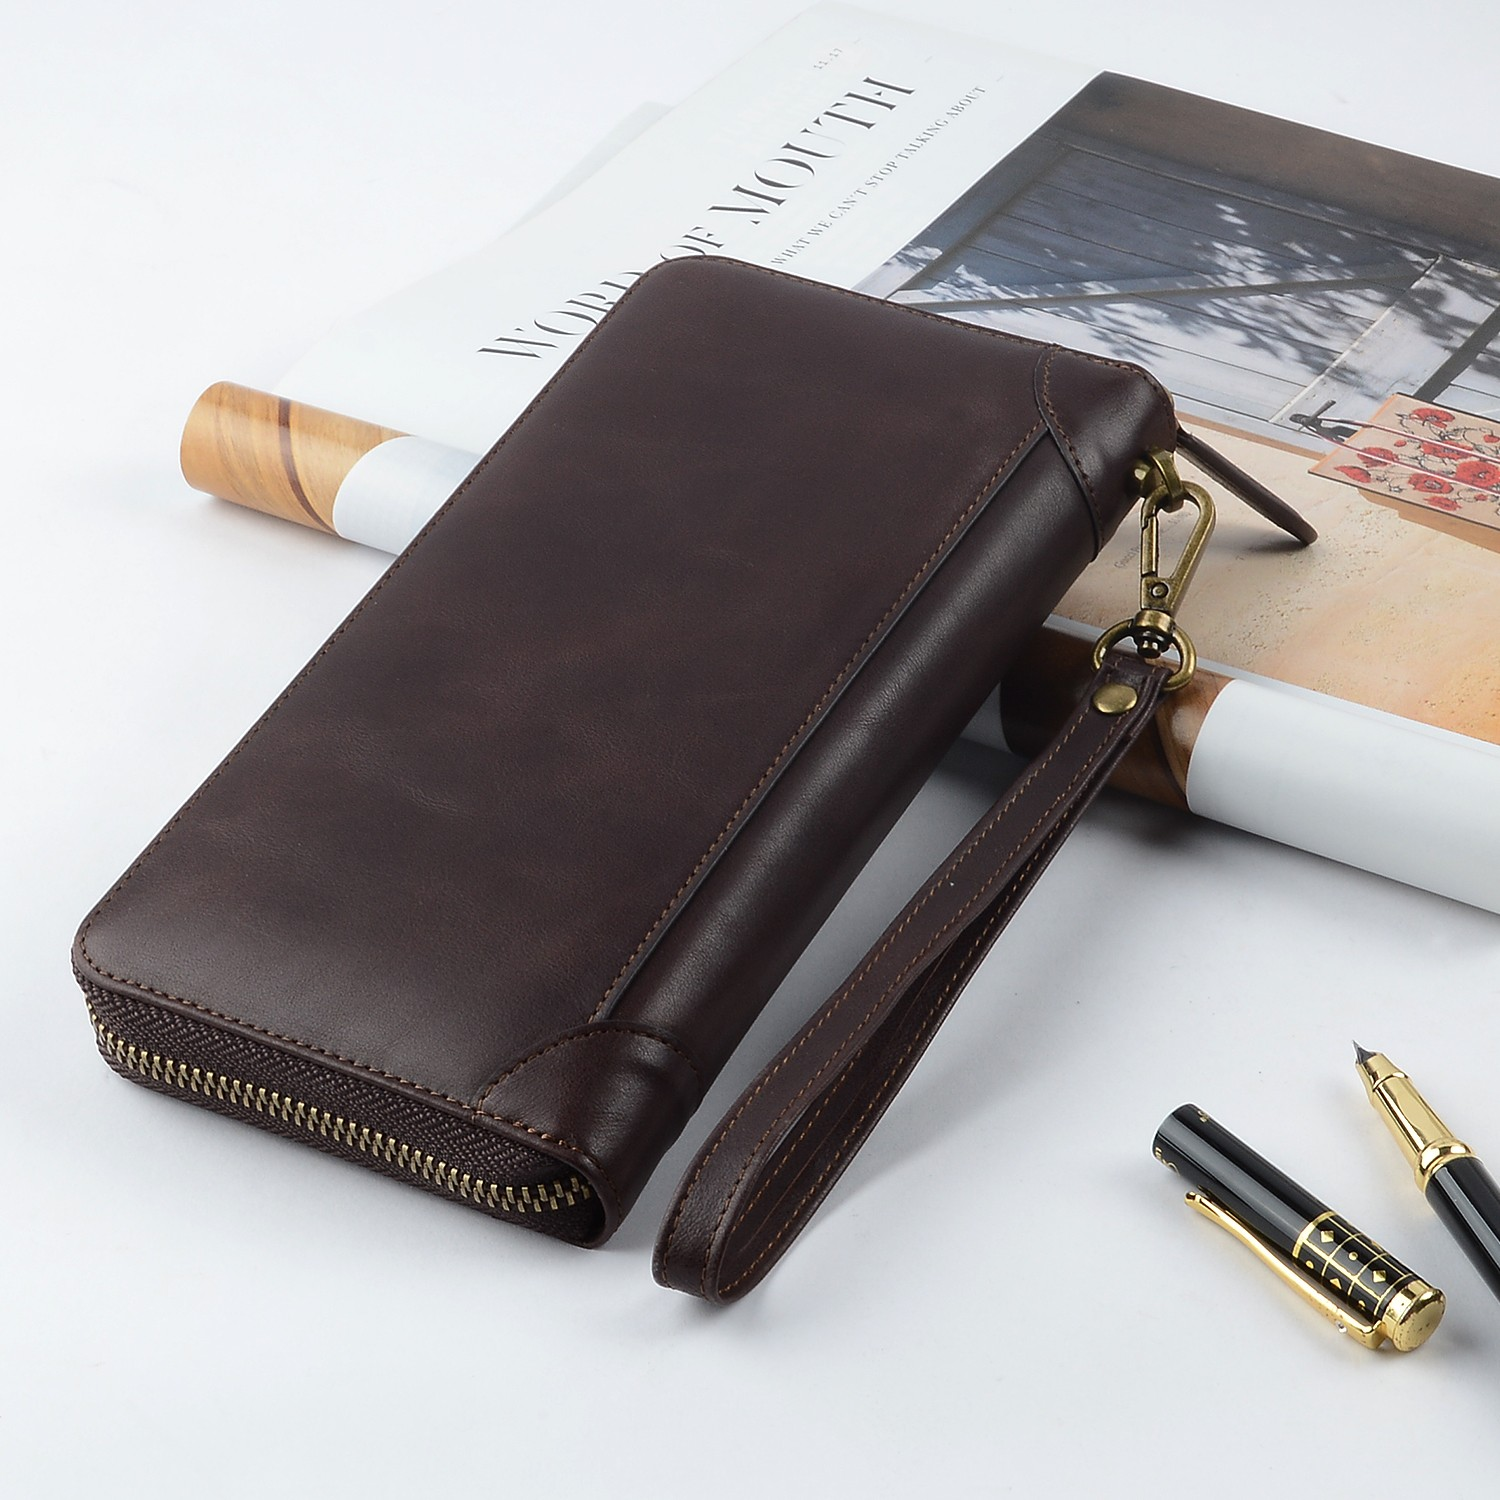 AIVI convenient leather card wallet factory for iphone 7/7 plus-7